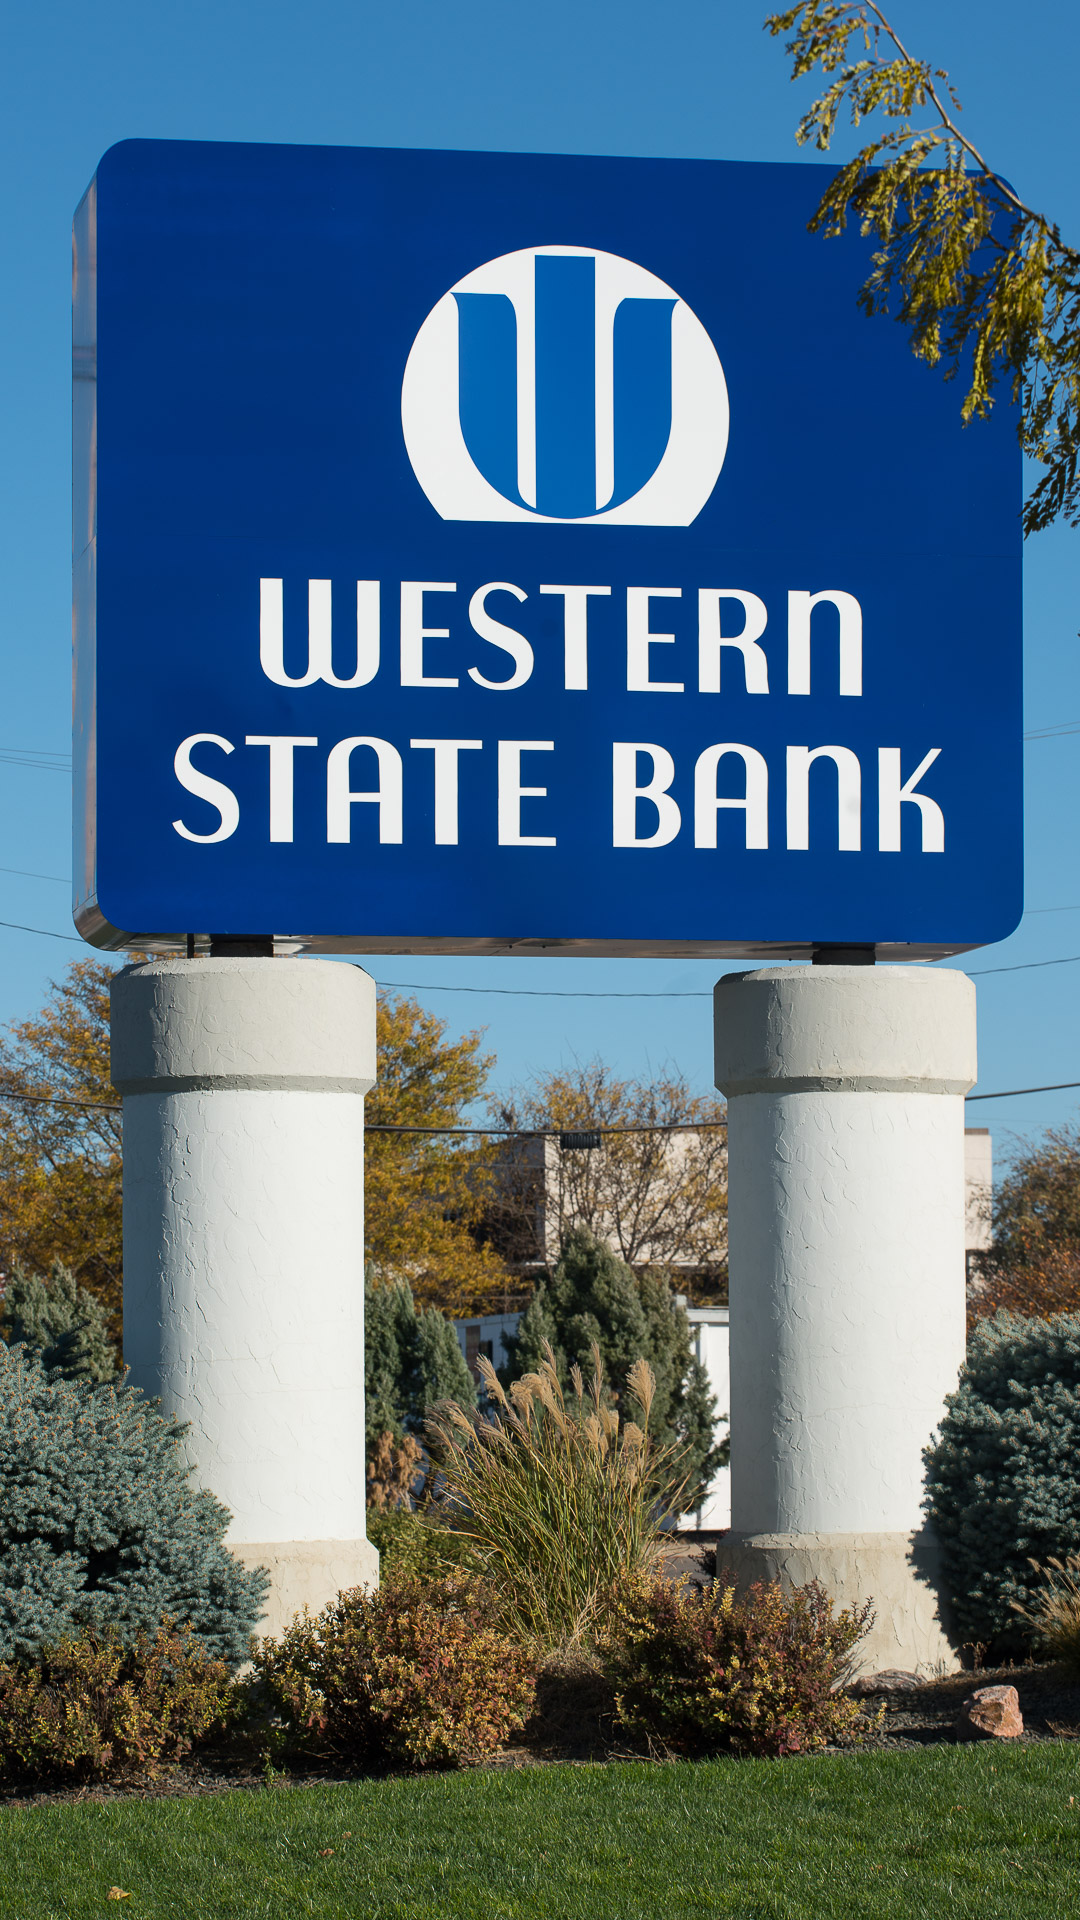 Western State Bank In Garden City Ks Luminous Neon Art Sign Systems Kansas And Missouri Sign Company